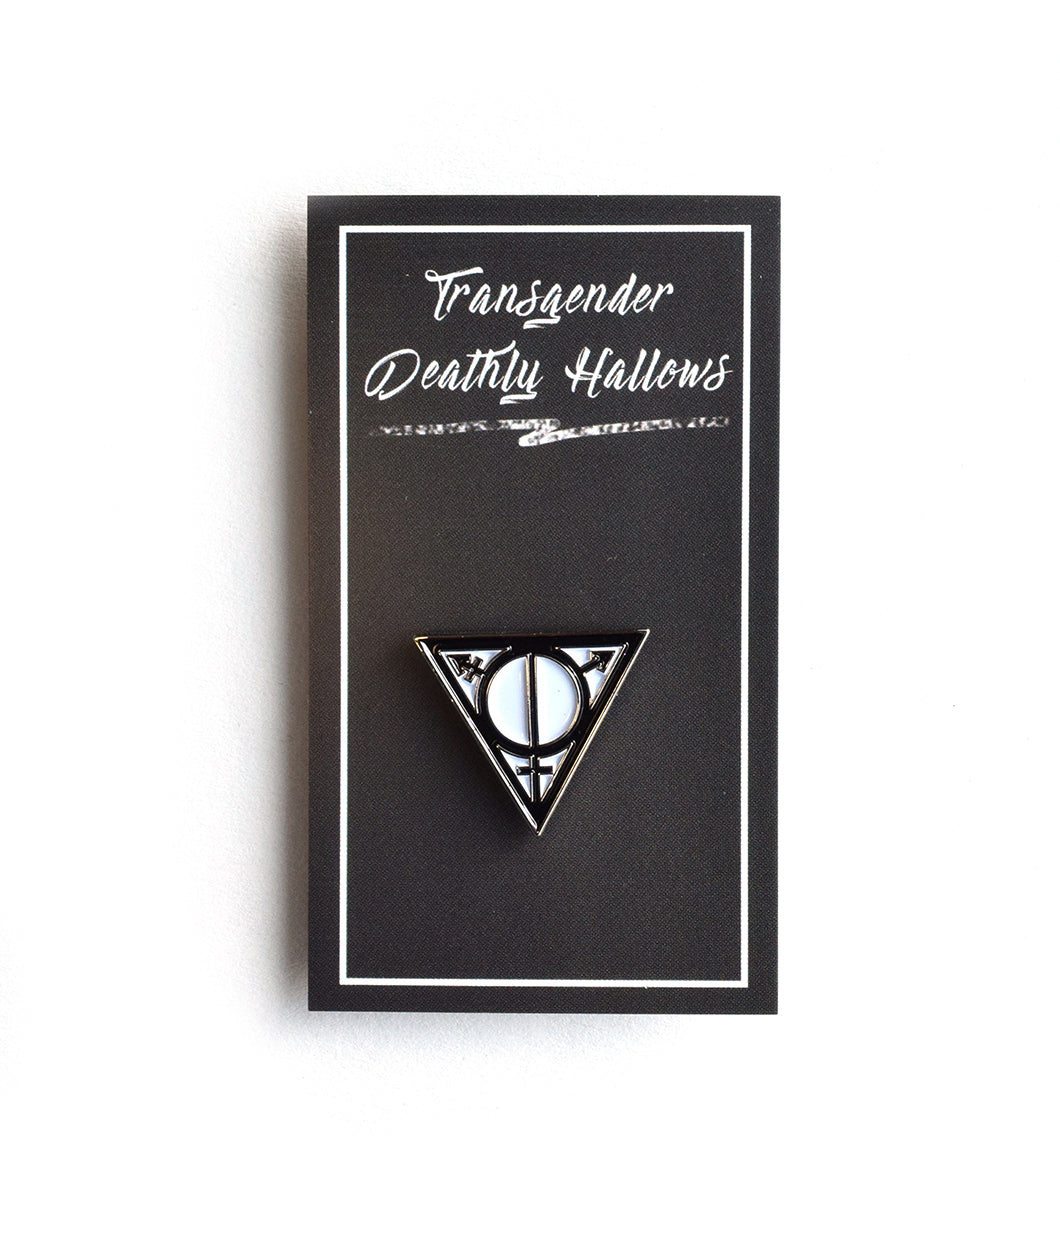 Transgender Deathly Hallows Lapel Pin